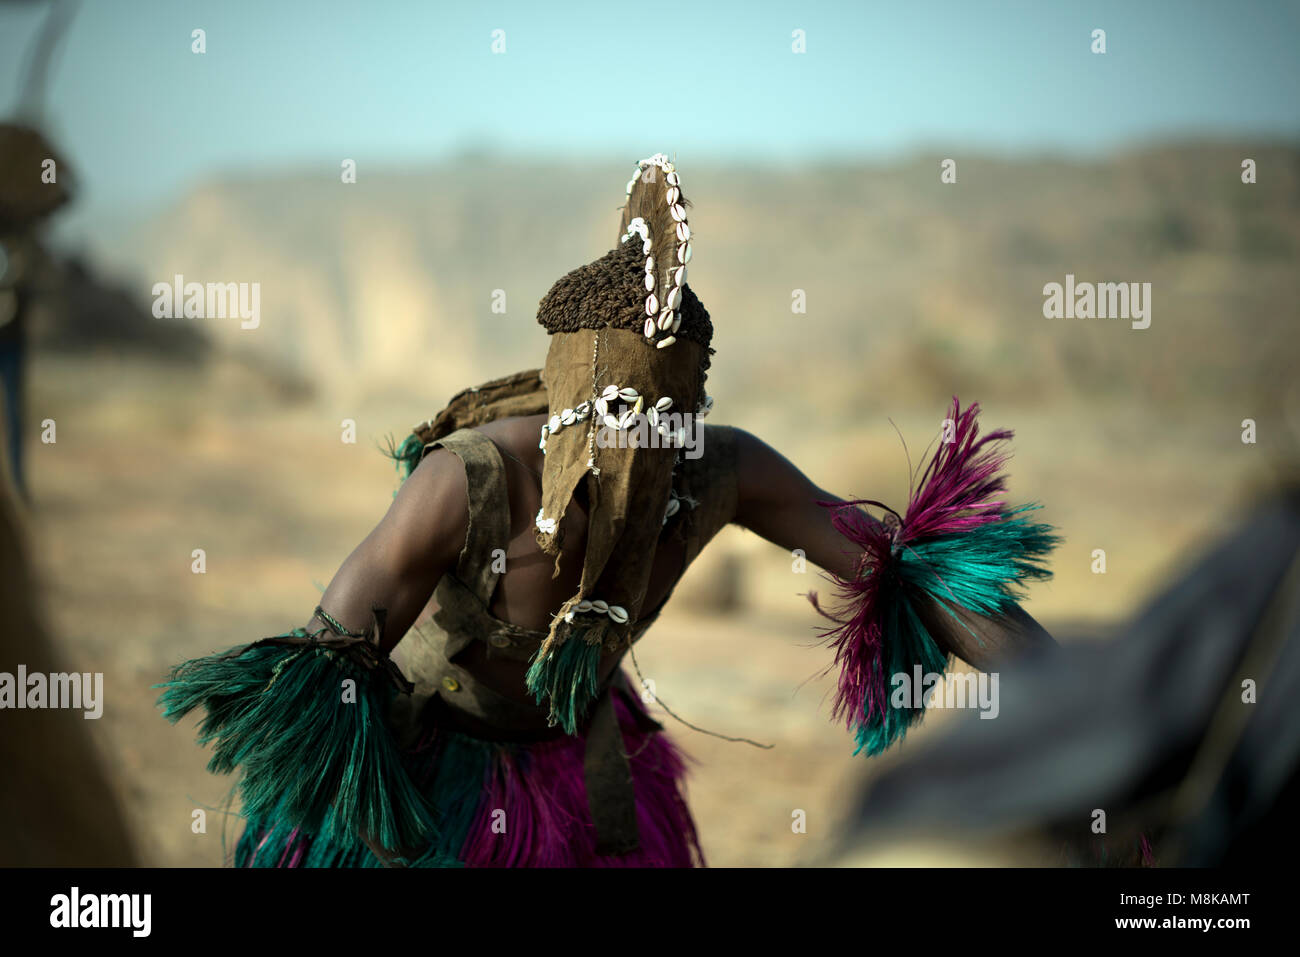 An indigenous Dogon masked dancer engaged in a ritualistic tribal dance. Mali, West Africa. - Stock Image